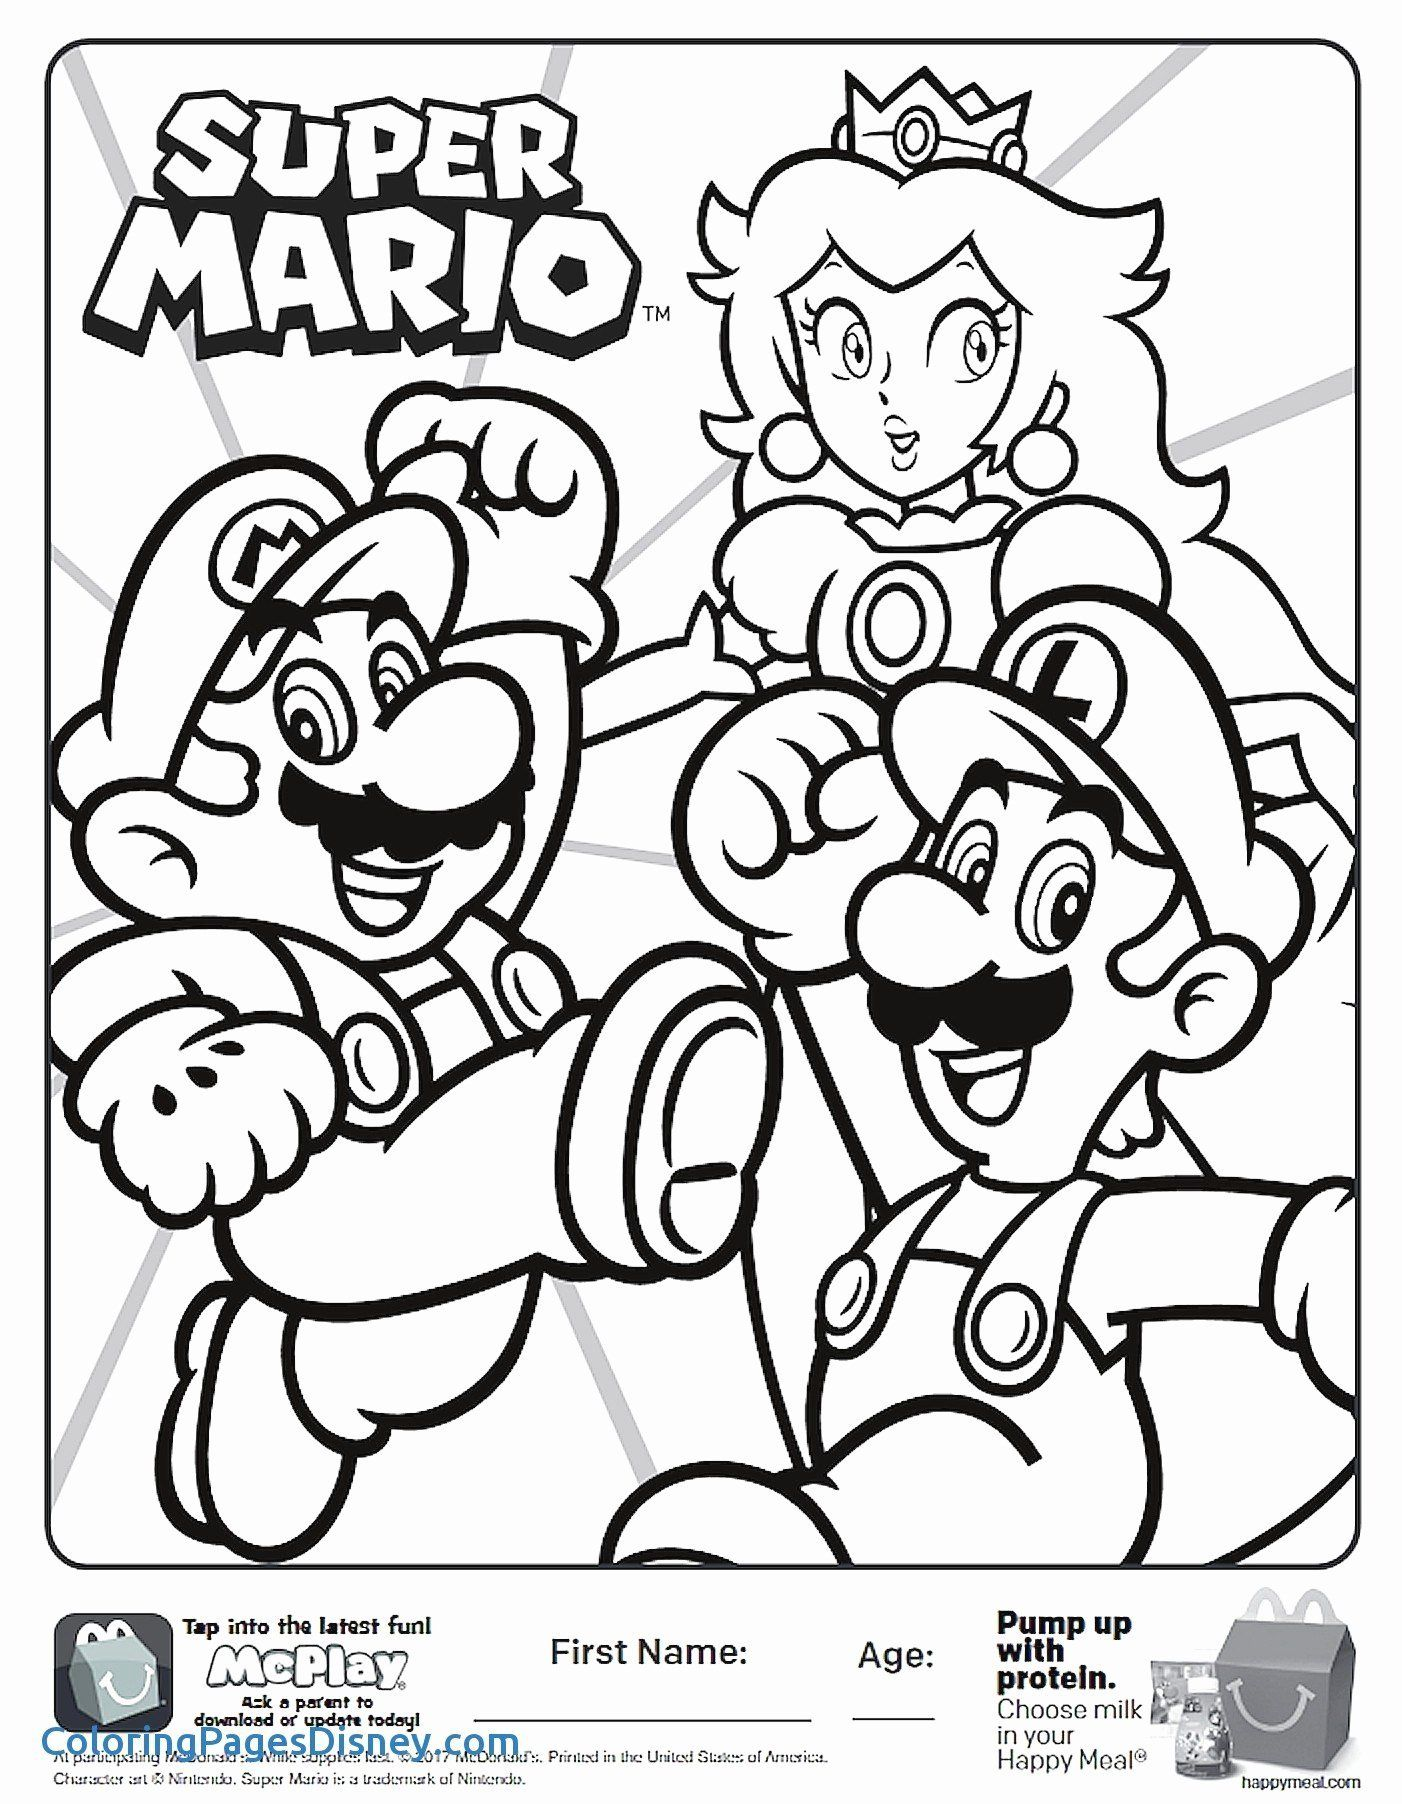 Coloring Animals Ark Best Of Christmas Church Coloring Pages Unique Precious Moments In 2020 Super Mario Coloring Pages Mario Coloring Pages Valentine Coloring Pages [ 1804 x 1402 Pixel ]